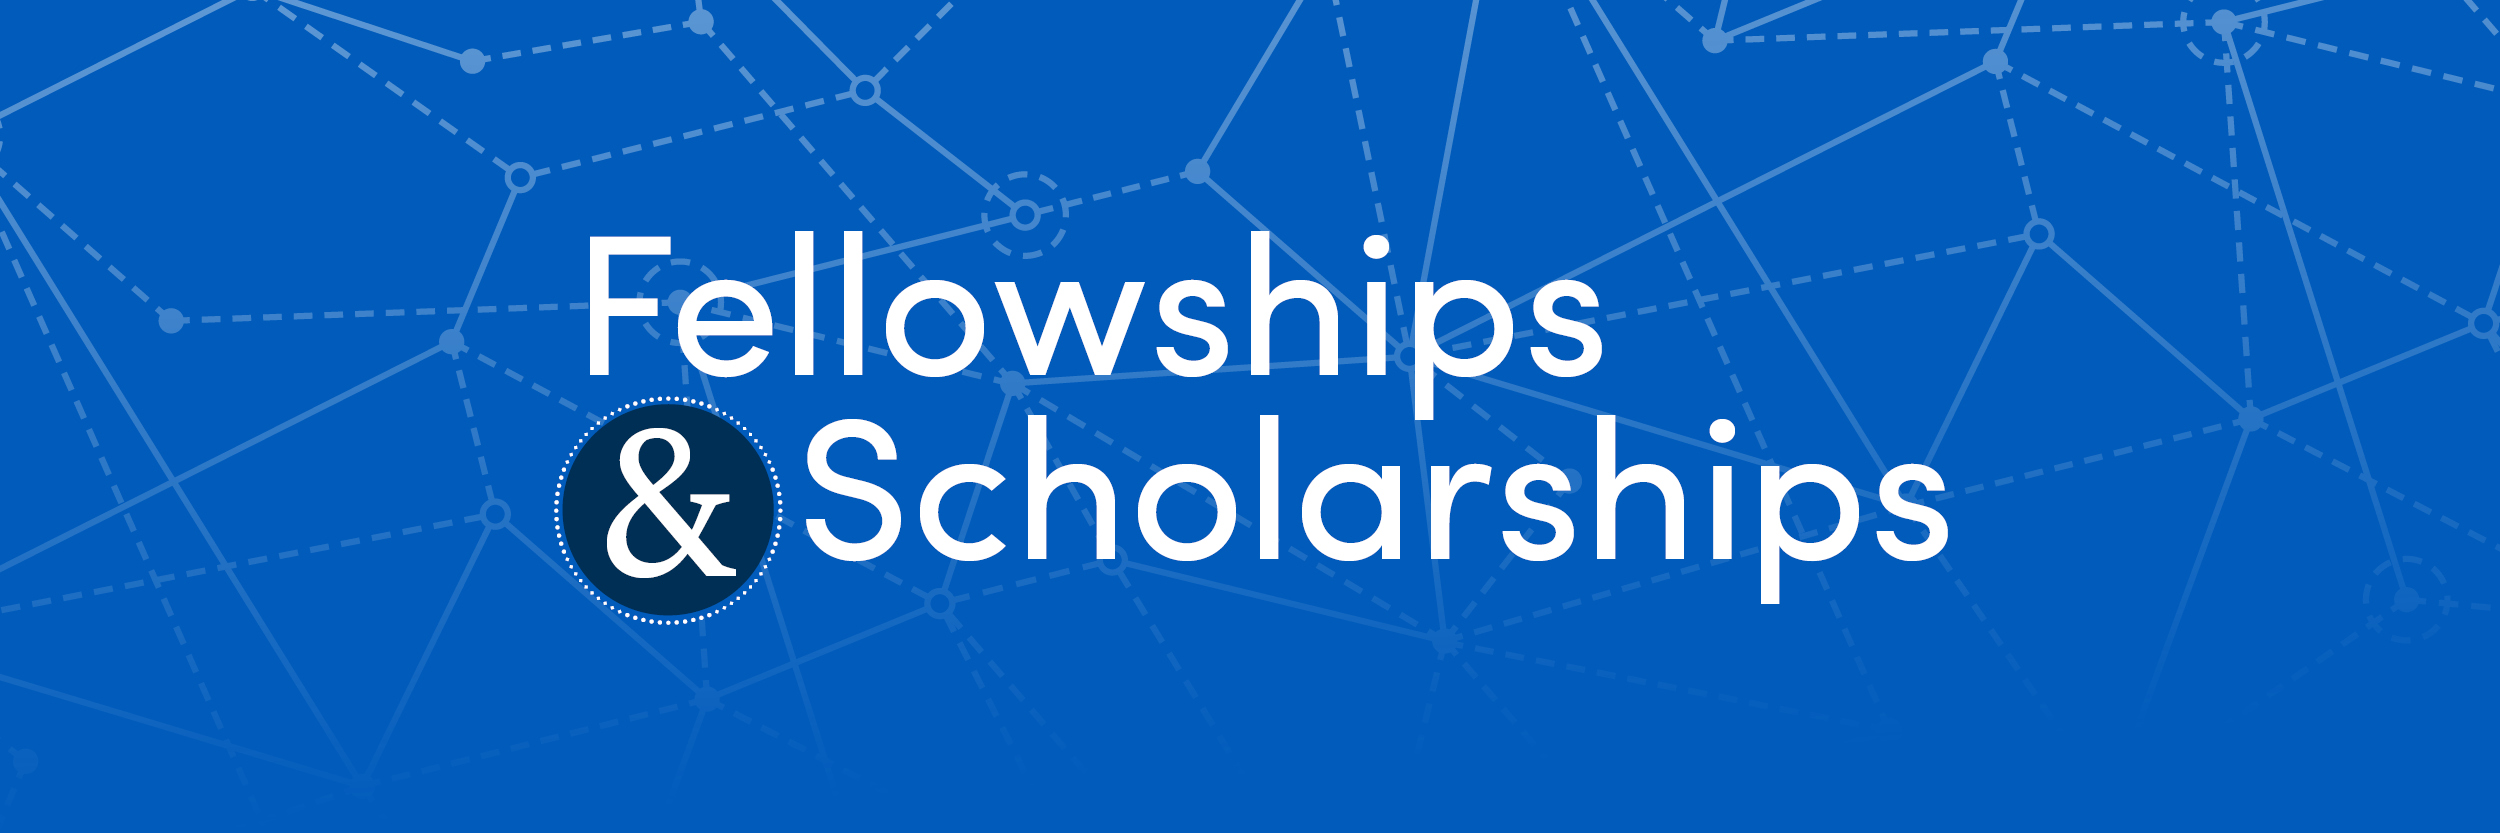 Fellowships and Scholarships Banner